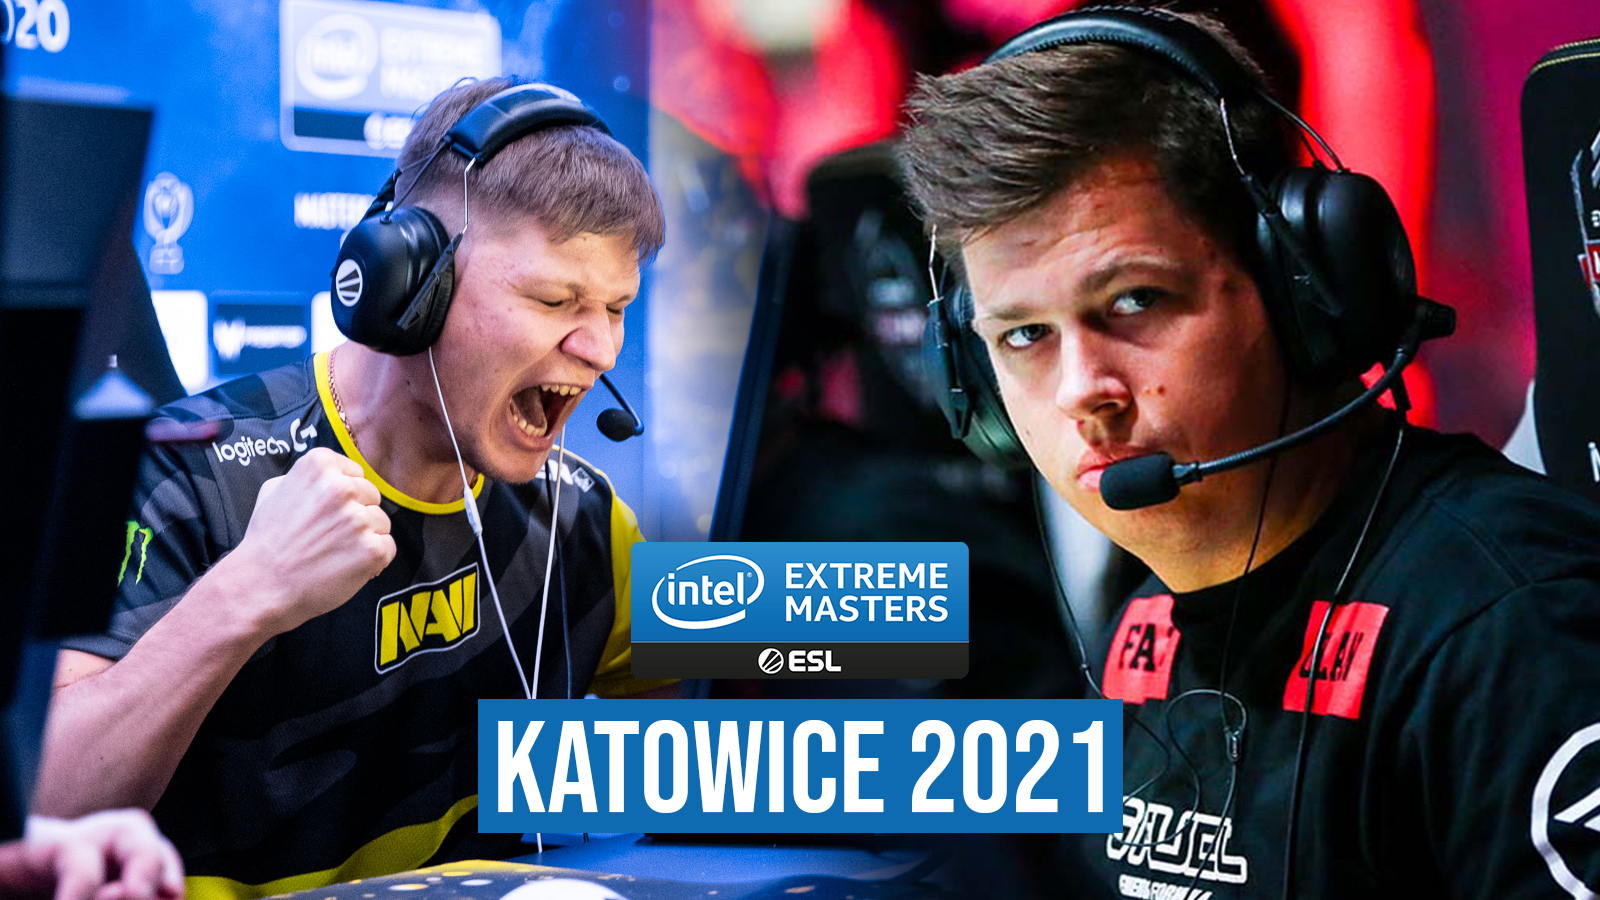 s1mple and Karrigan playing at IEM Katowice 2021